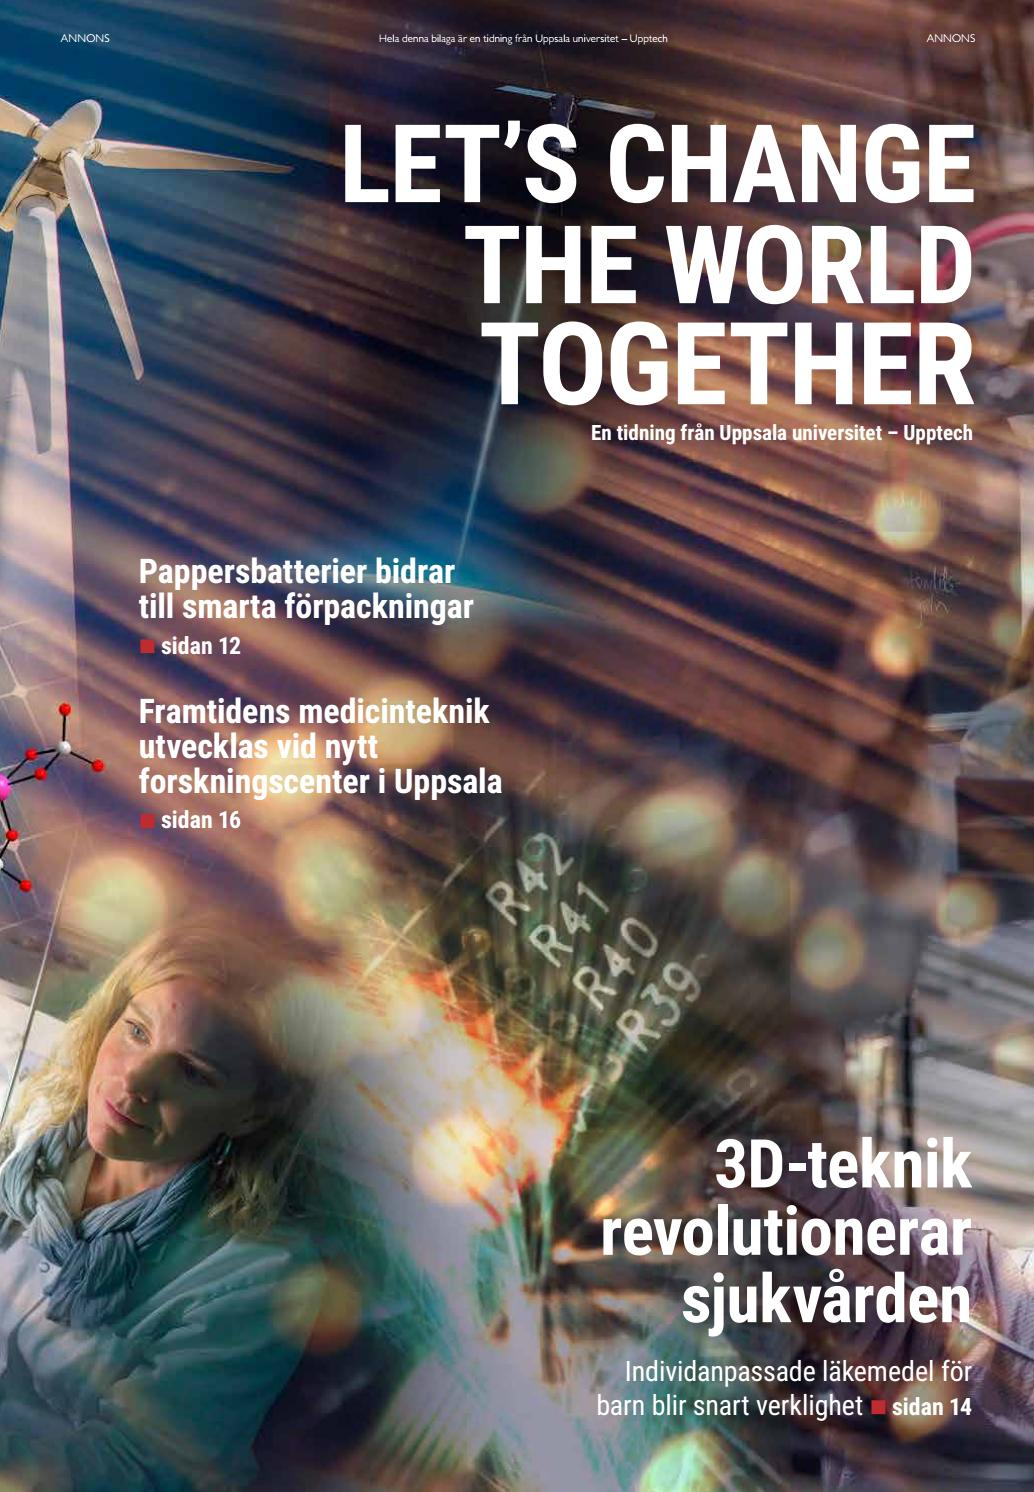 053523b95dc Let's change the world together by Crossmedia Communication - issuu